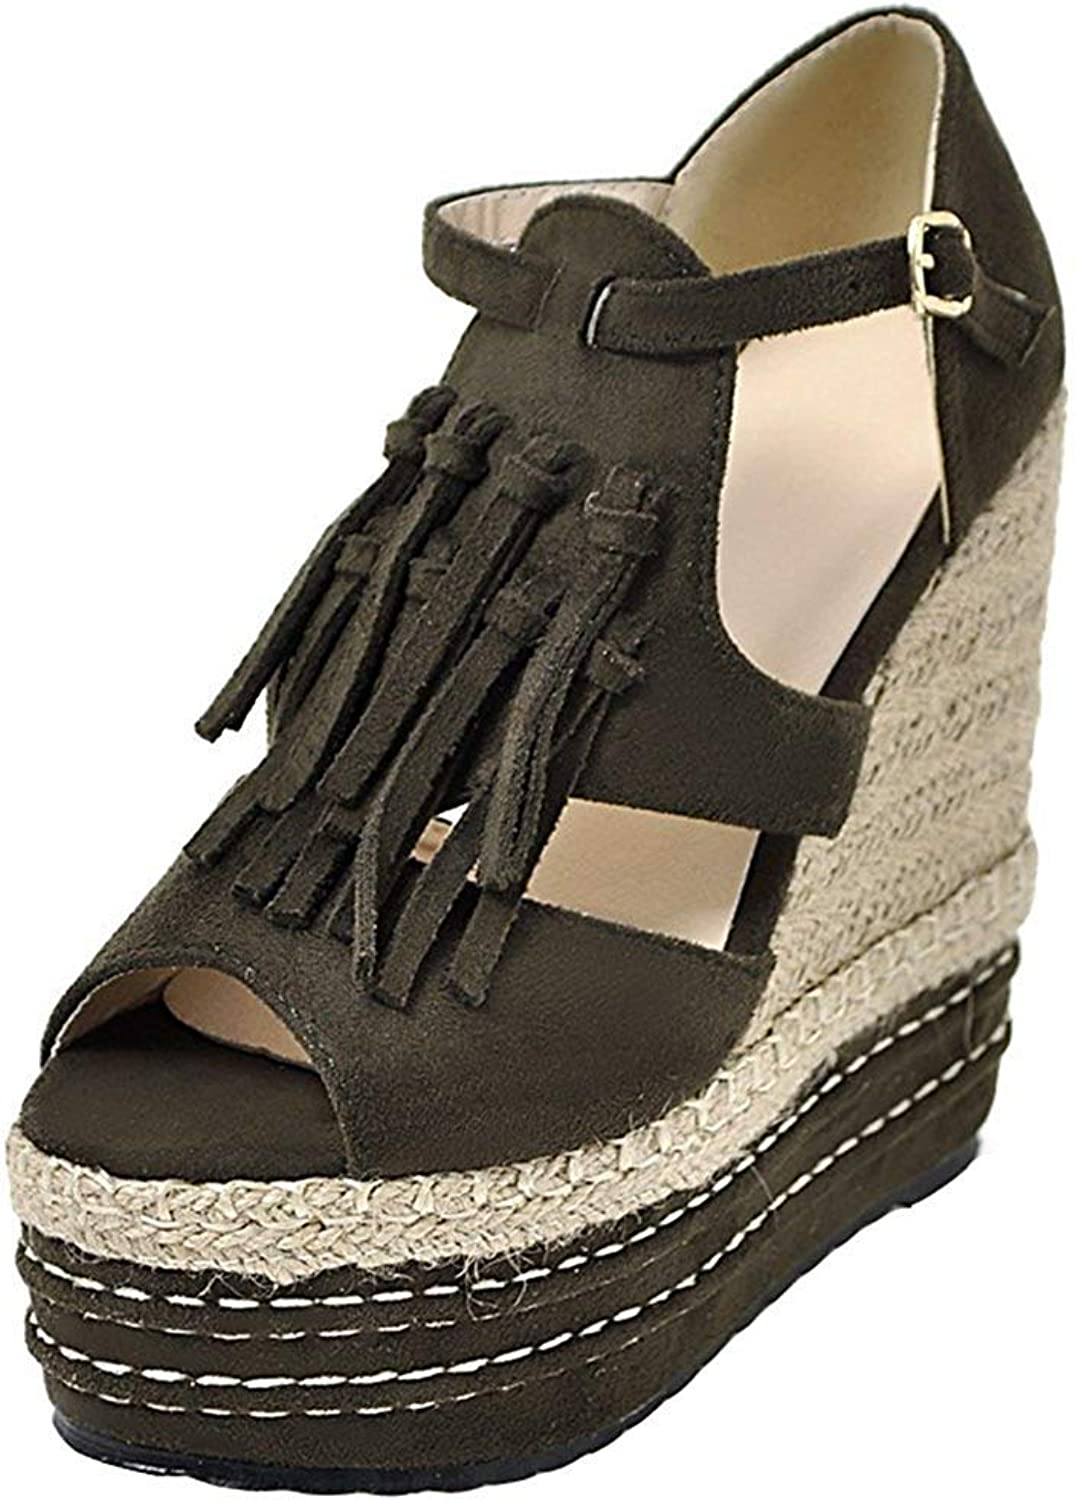 Lelehwhge Women's Stylish Fringed Peep Toe High Wedge Heels Platform Buckle Strap Sandals Army Green 4.5 M US